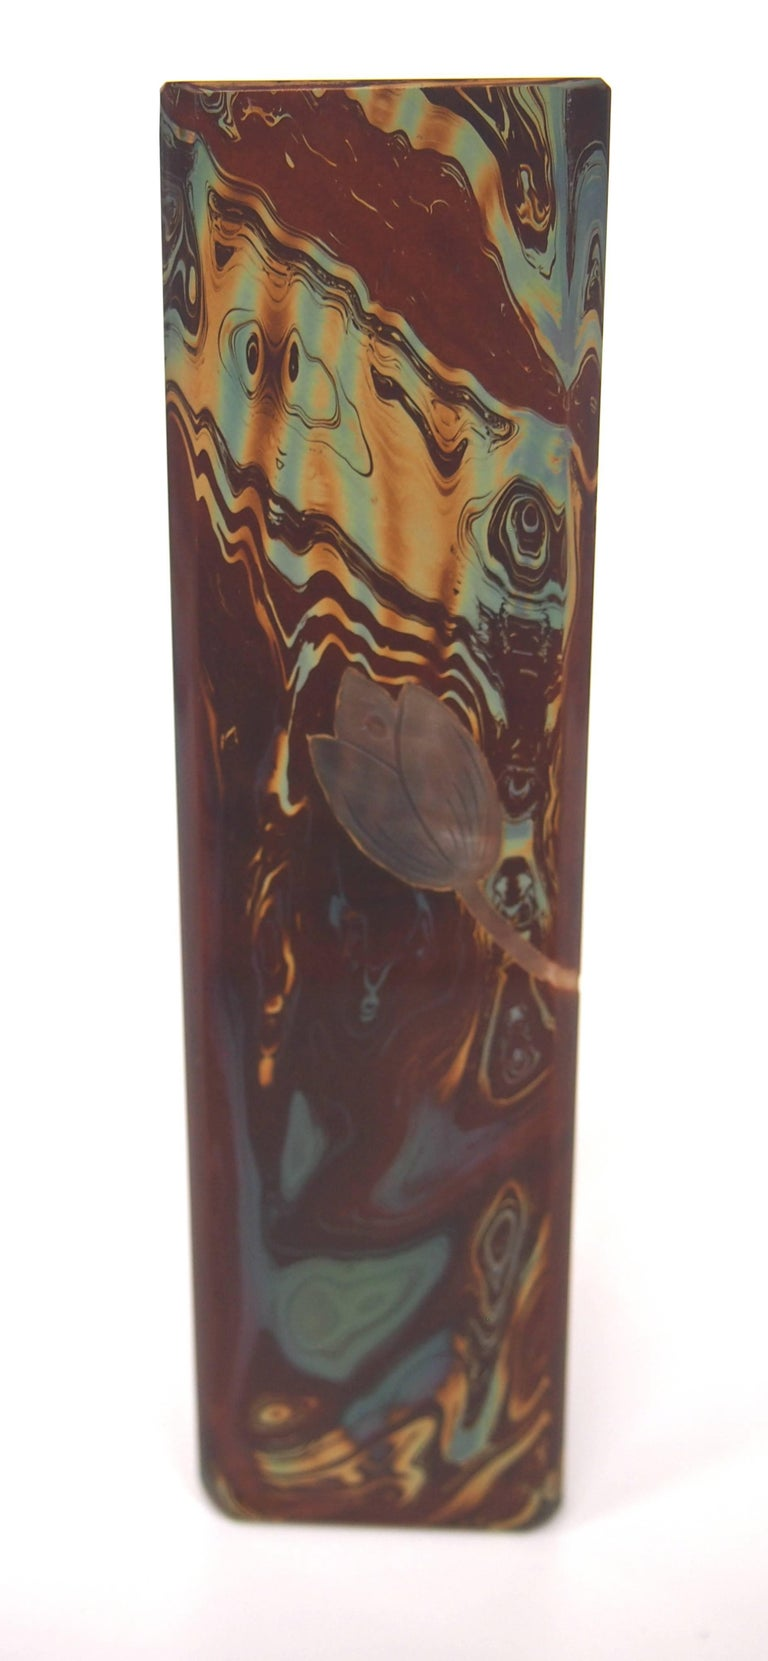 Riedel Cut and Cameo Stone-Like Lithyalin Vase, Victorian In Excellent Condition For Sale In London, GB